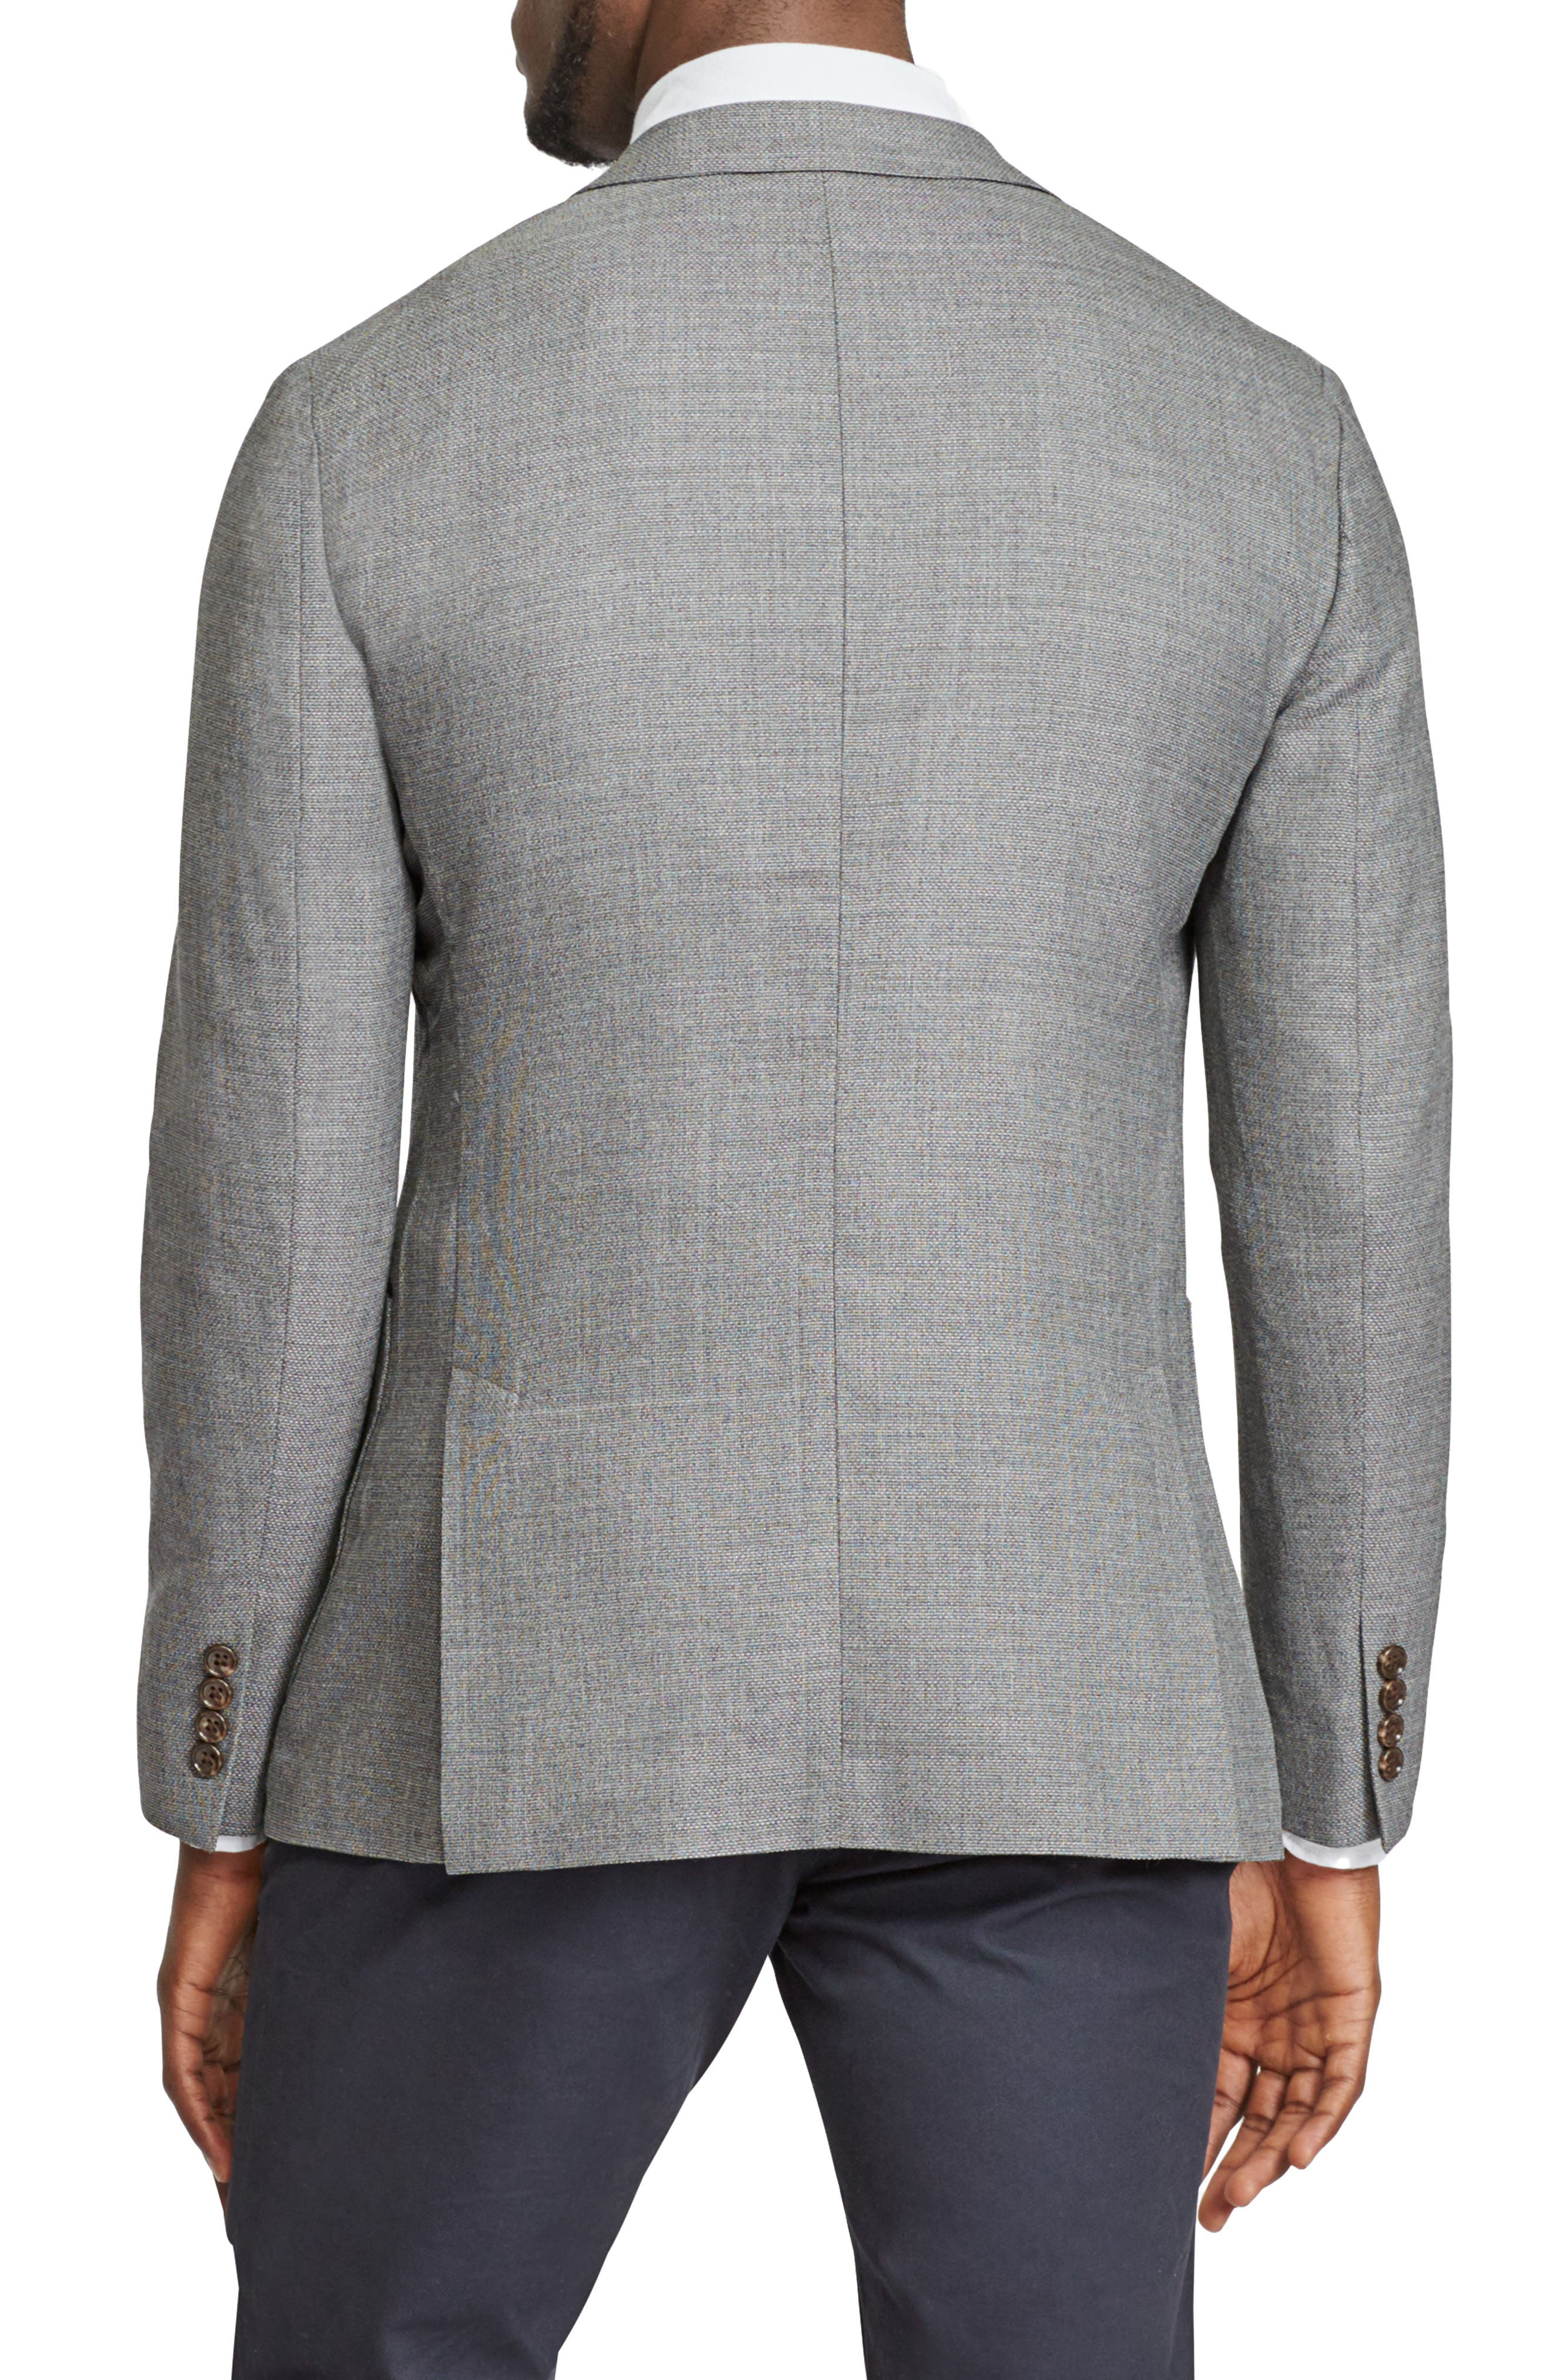 Trim Fit Wool Blazer,                             Alternate thumbnail 2, color,                             Mid Grey